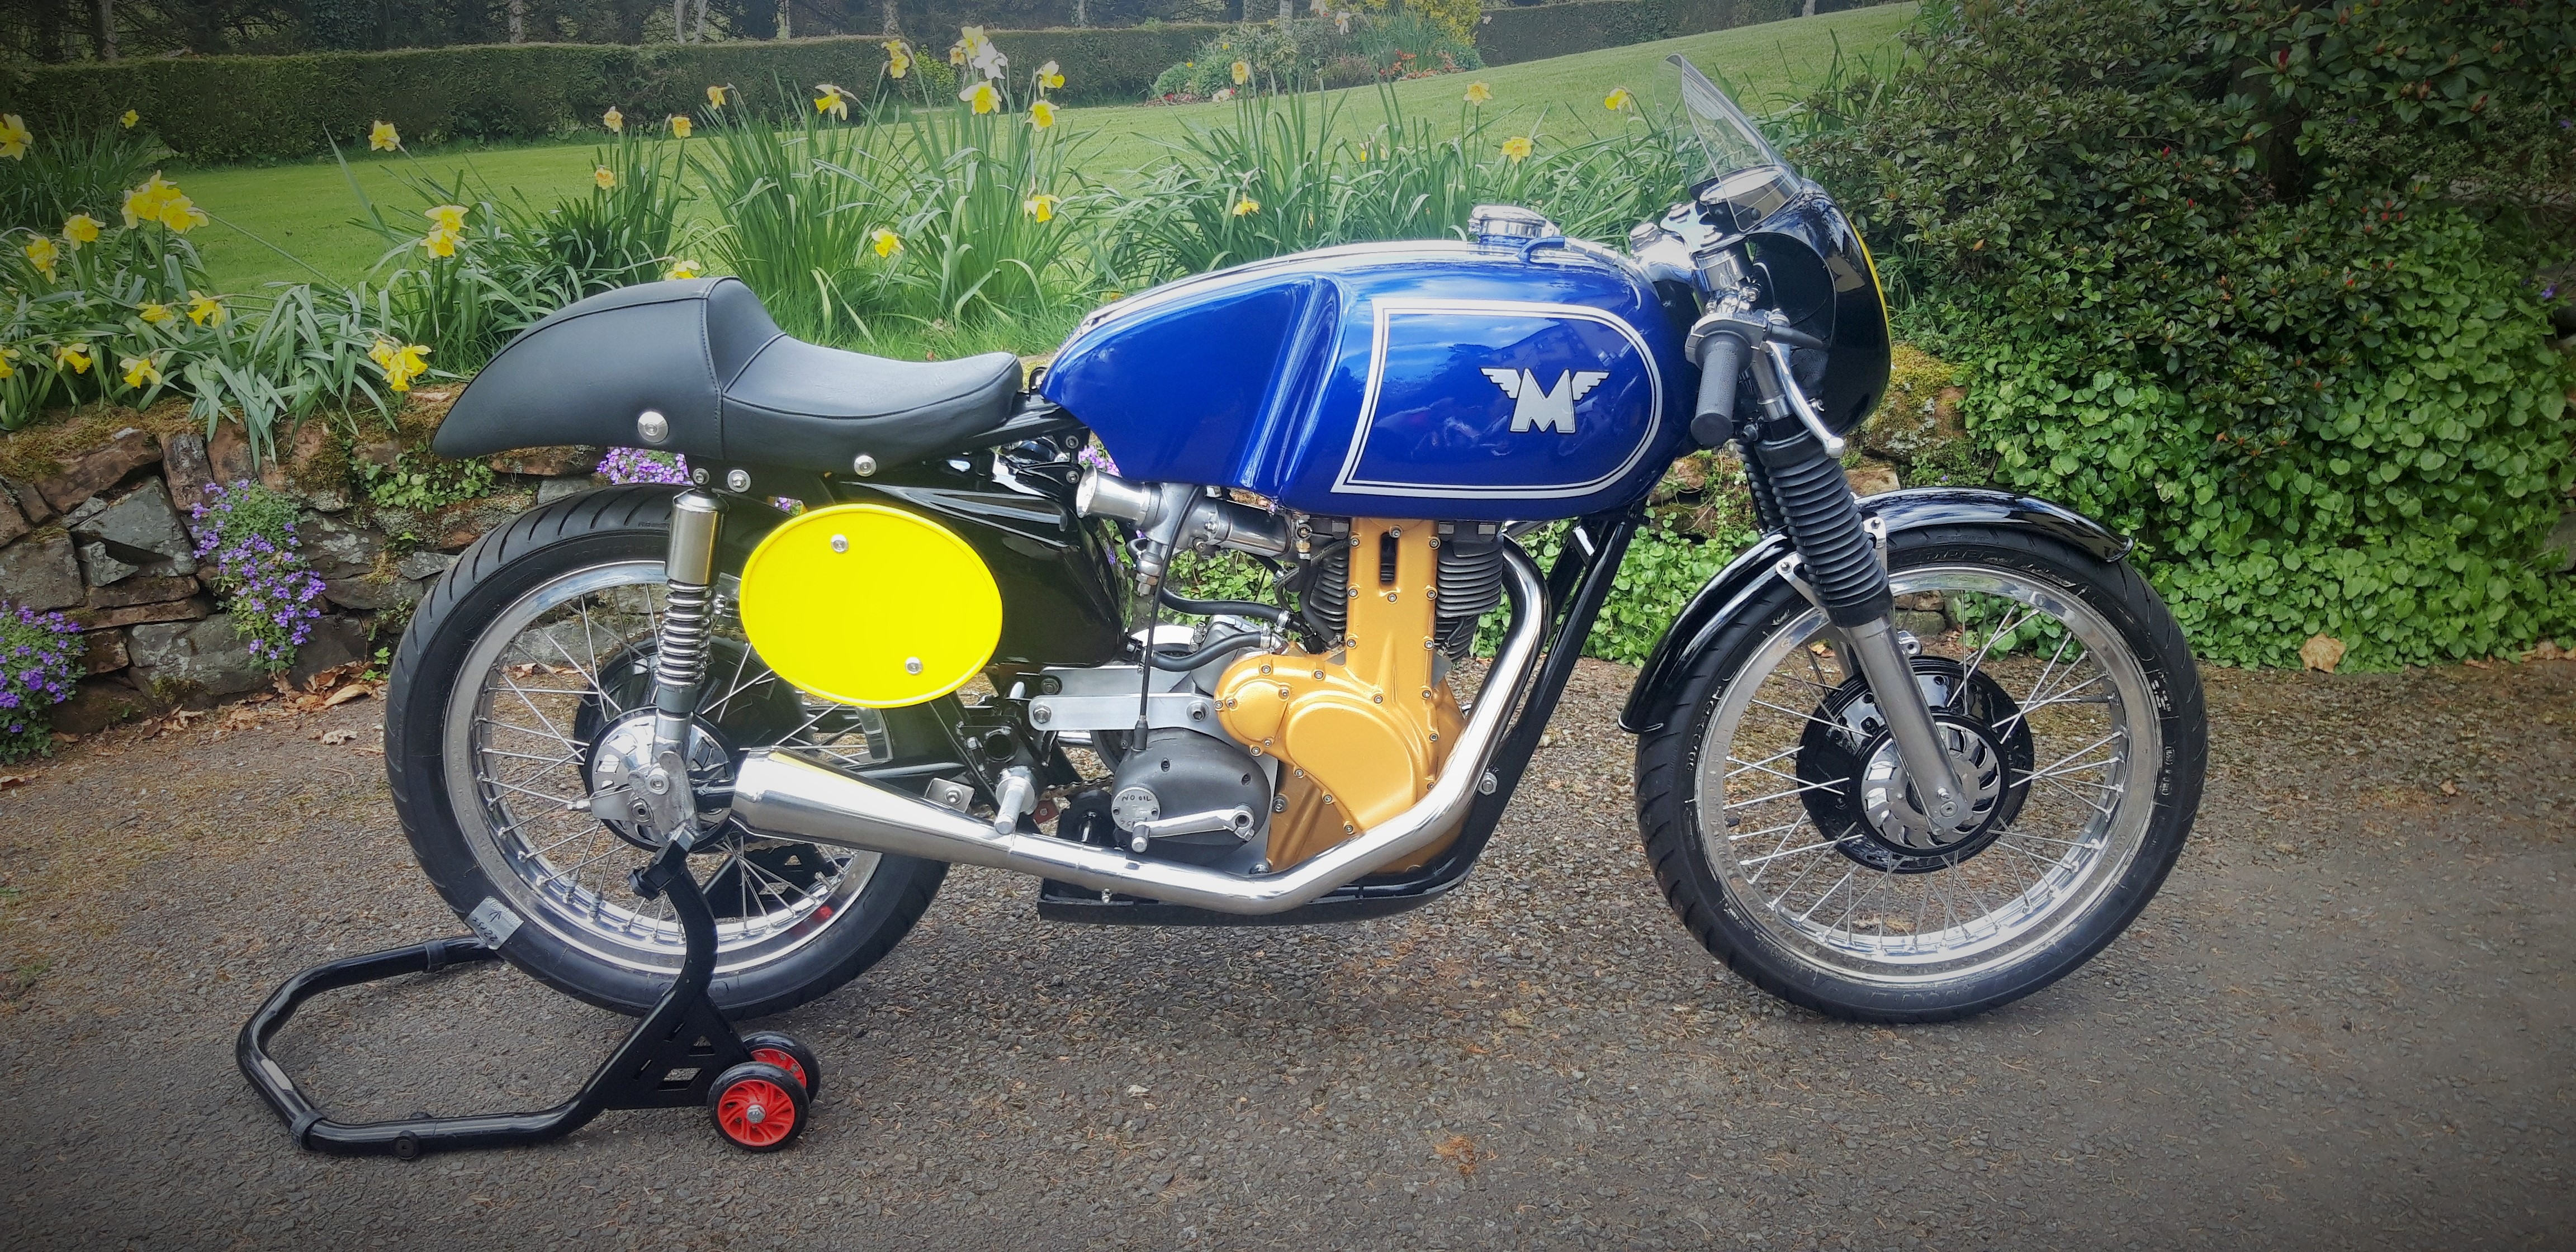 Matchless G50 pic3